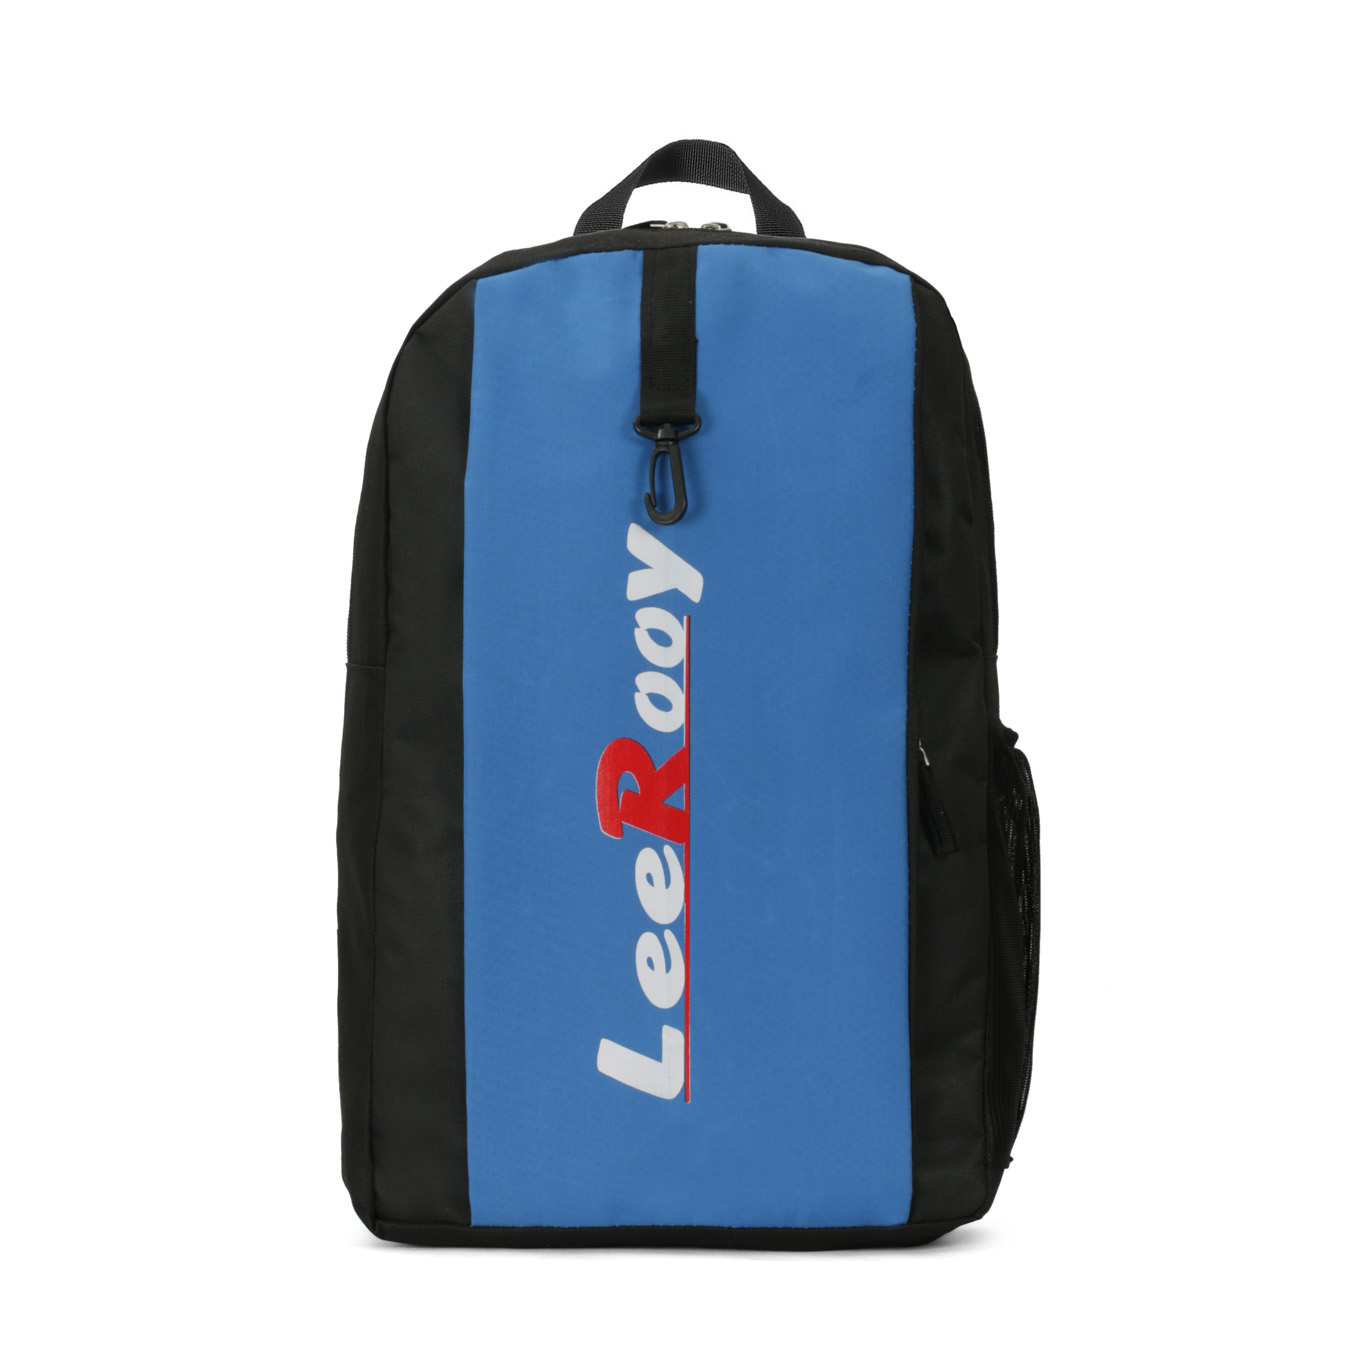 LeeRooy Other  School Bags  Backpack   Black Laptop Bag backpack School Bag laptop Bag Shoulder bag Collage Bag